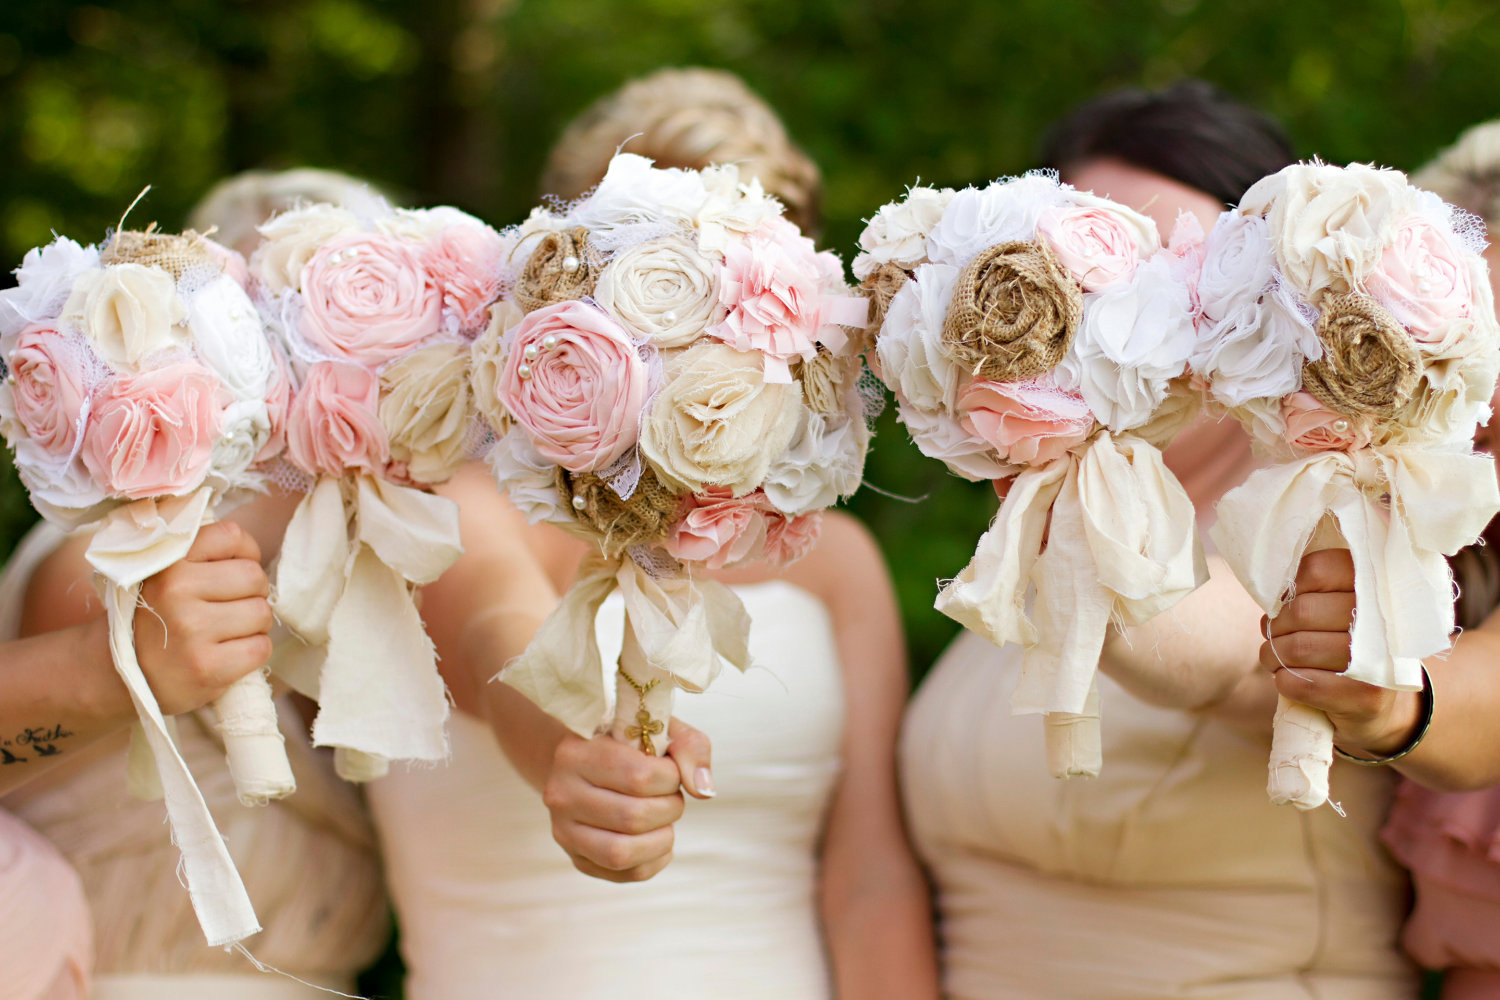 burlap wedding bouquets | 50 Best Burlap Wedding Ideas | via http://emmalinebride.com/decor/burlap-wedding-ideas/